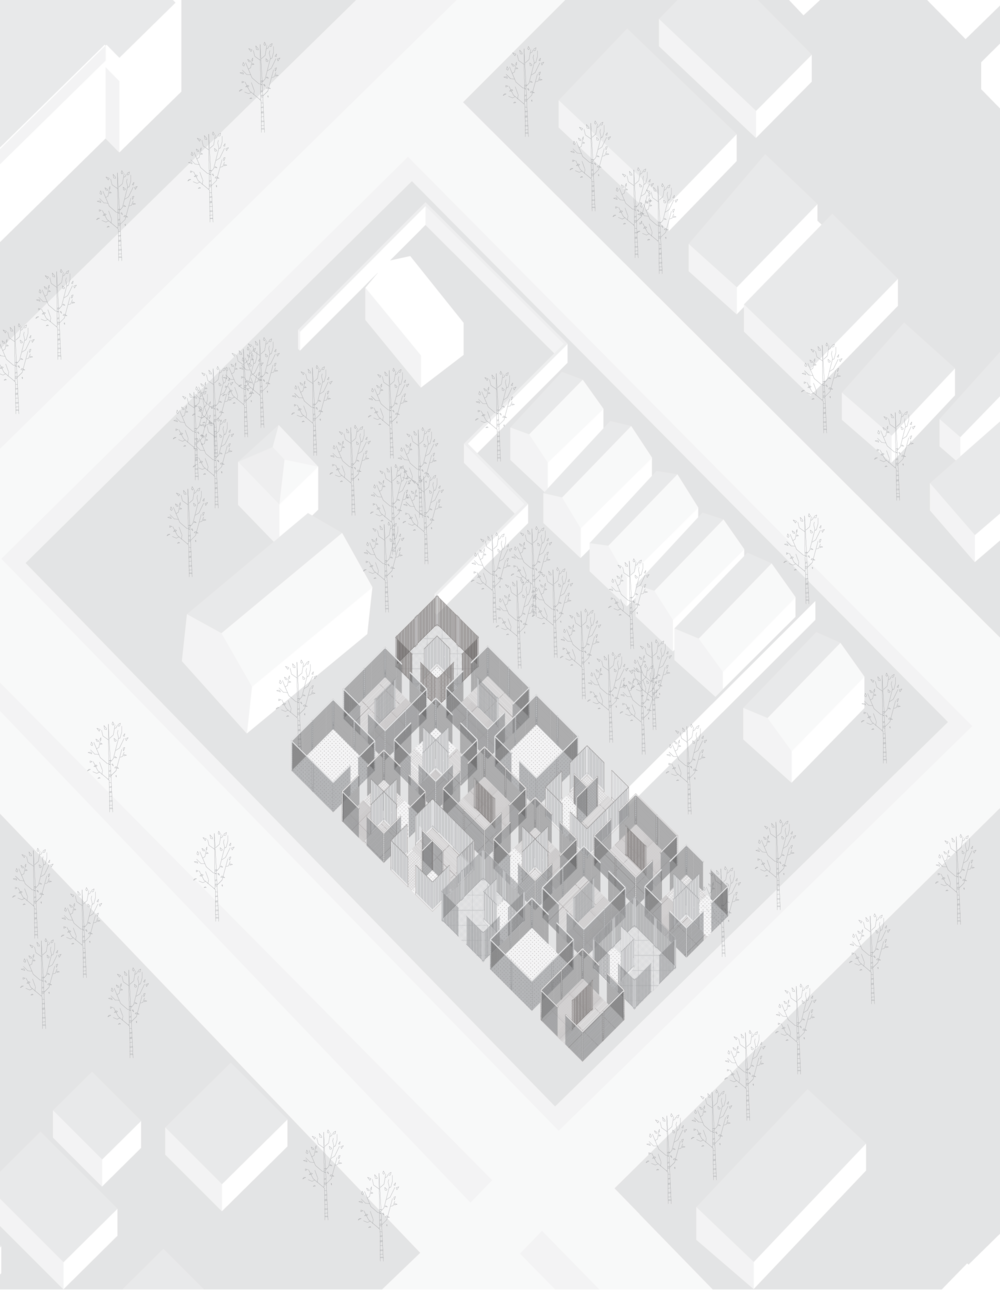 Site axonometric